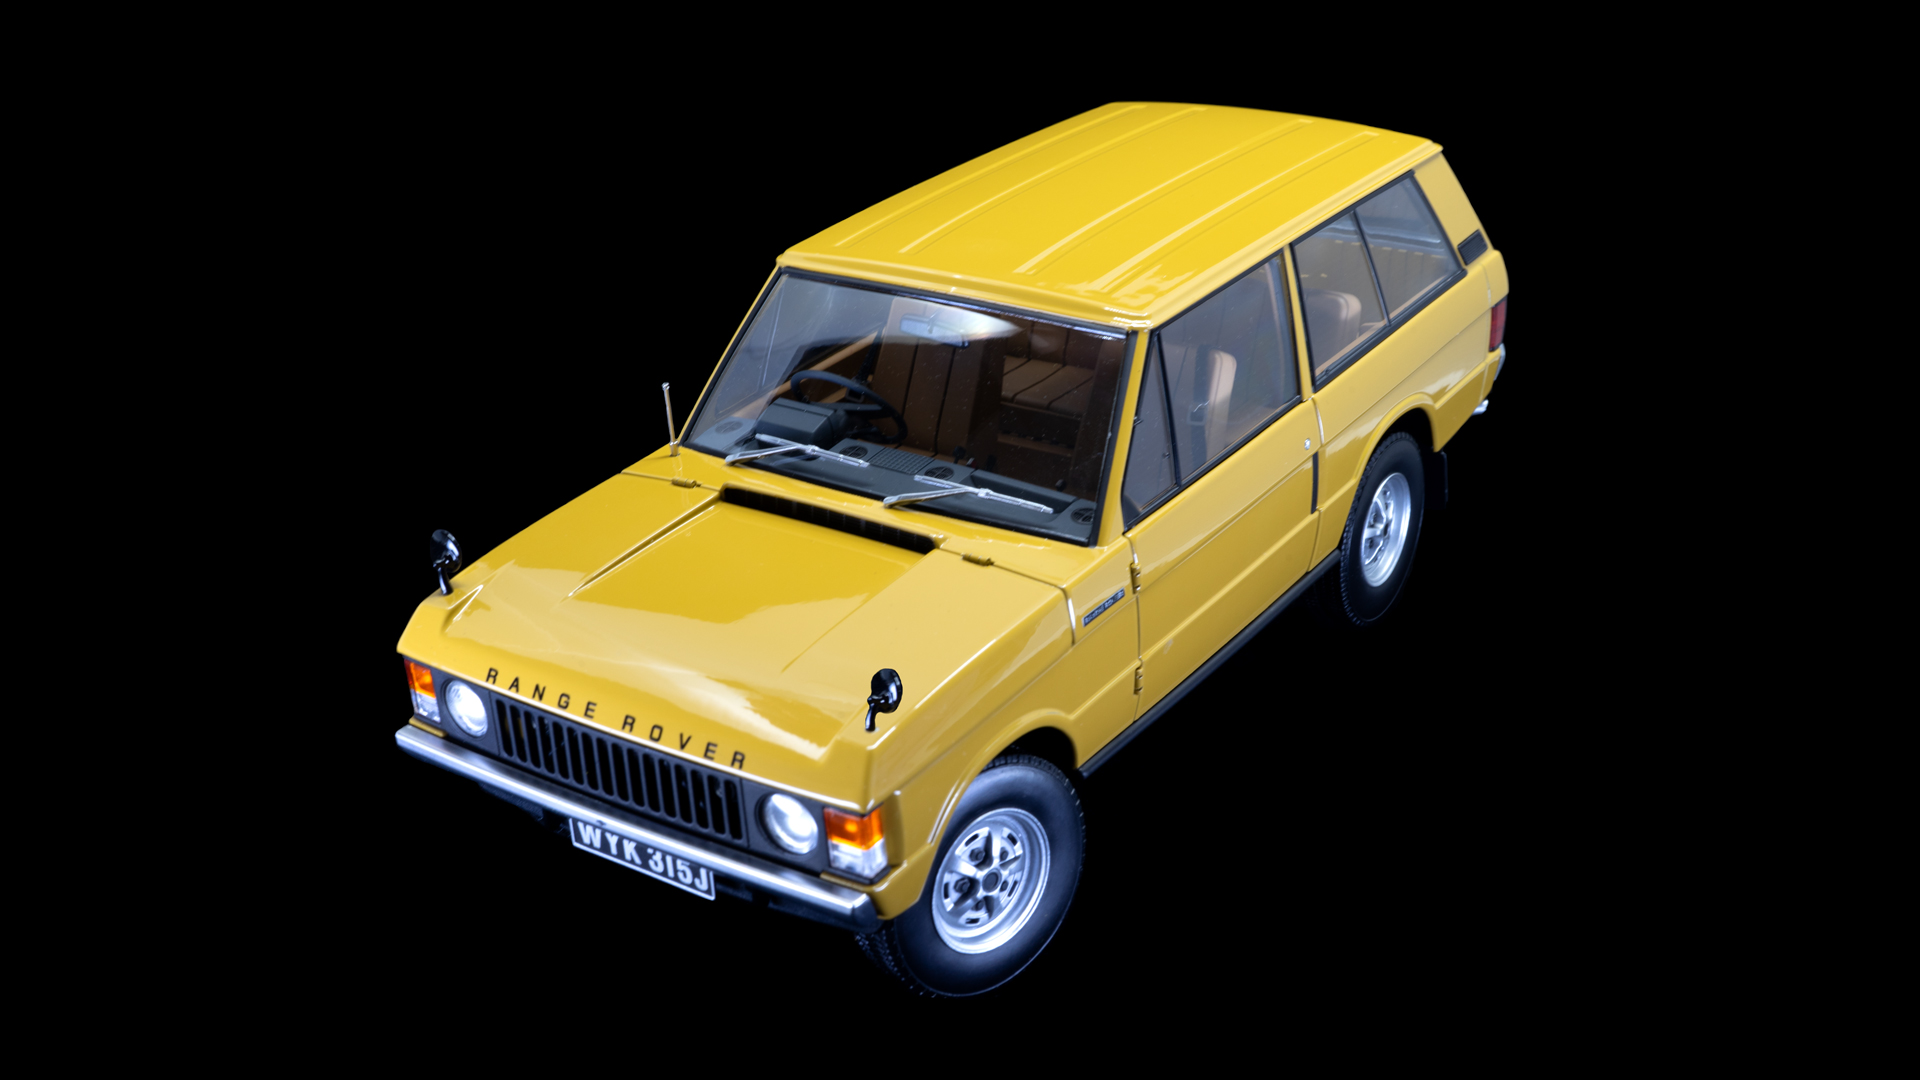 Almost Real Land Rover Range Rover 1970